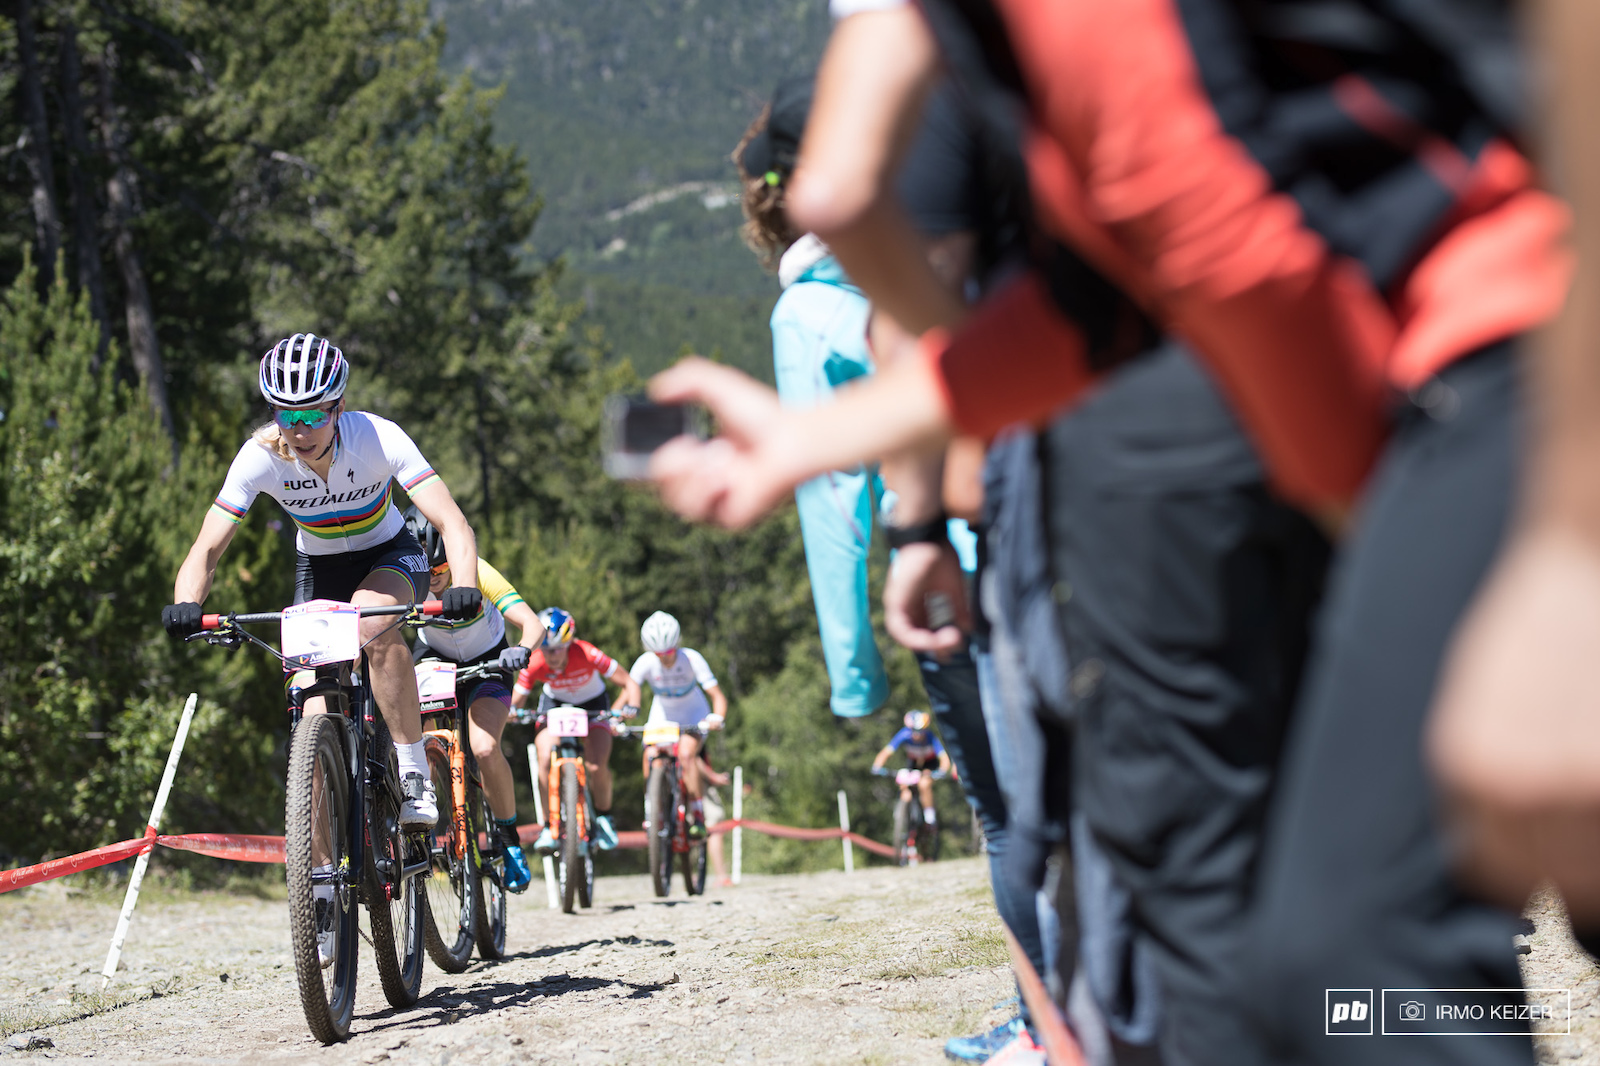 Annika Langvad reigning World Champion in both cross country and marathon disciplines rode a consistent race today.